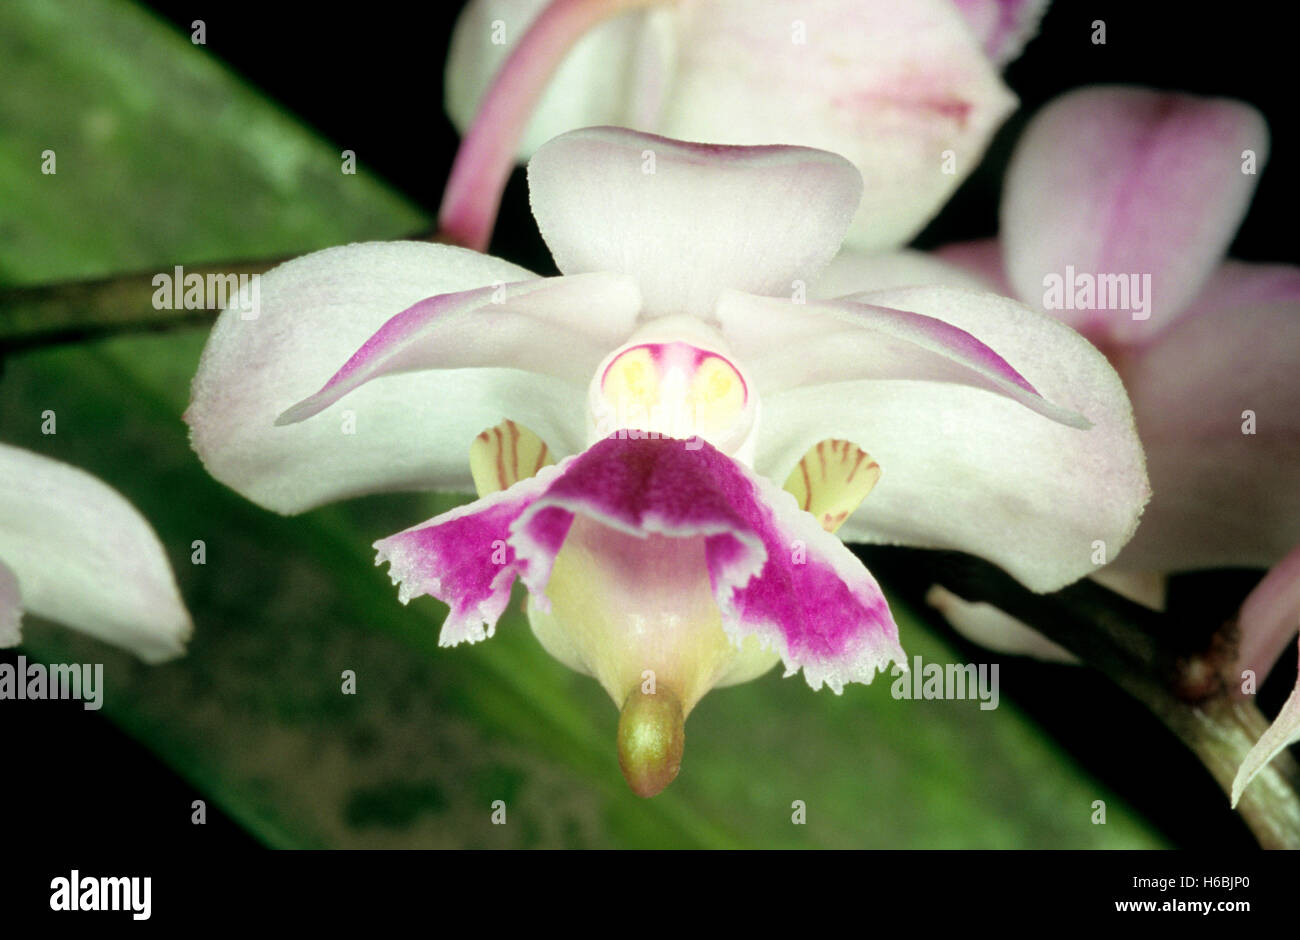 Aerides crispum. An epiphytic orchid with fragrant flowers found in the Western Ghats. - Stock Image